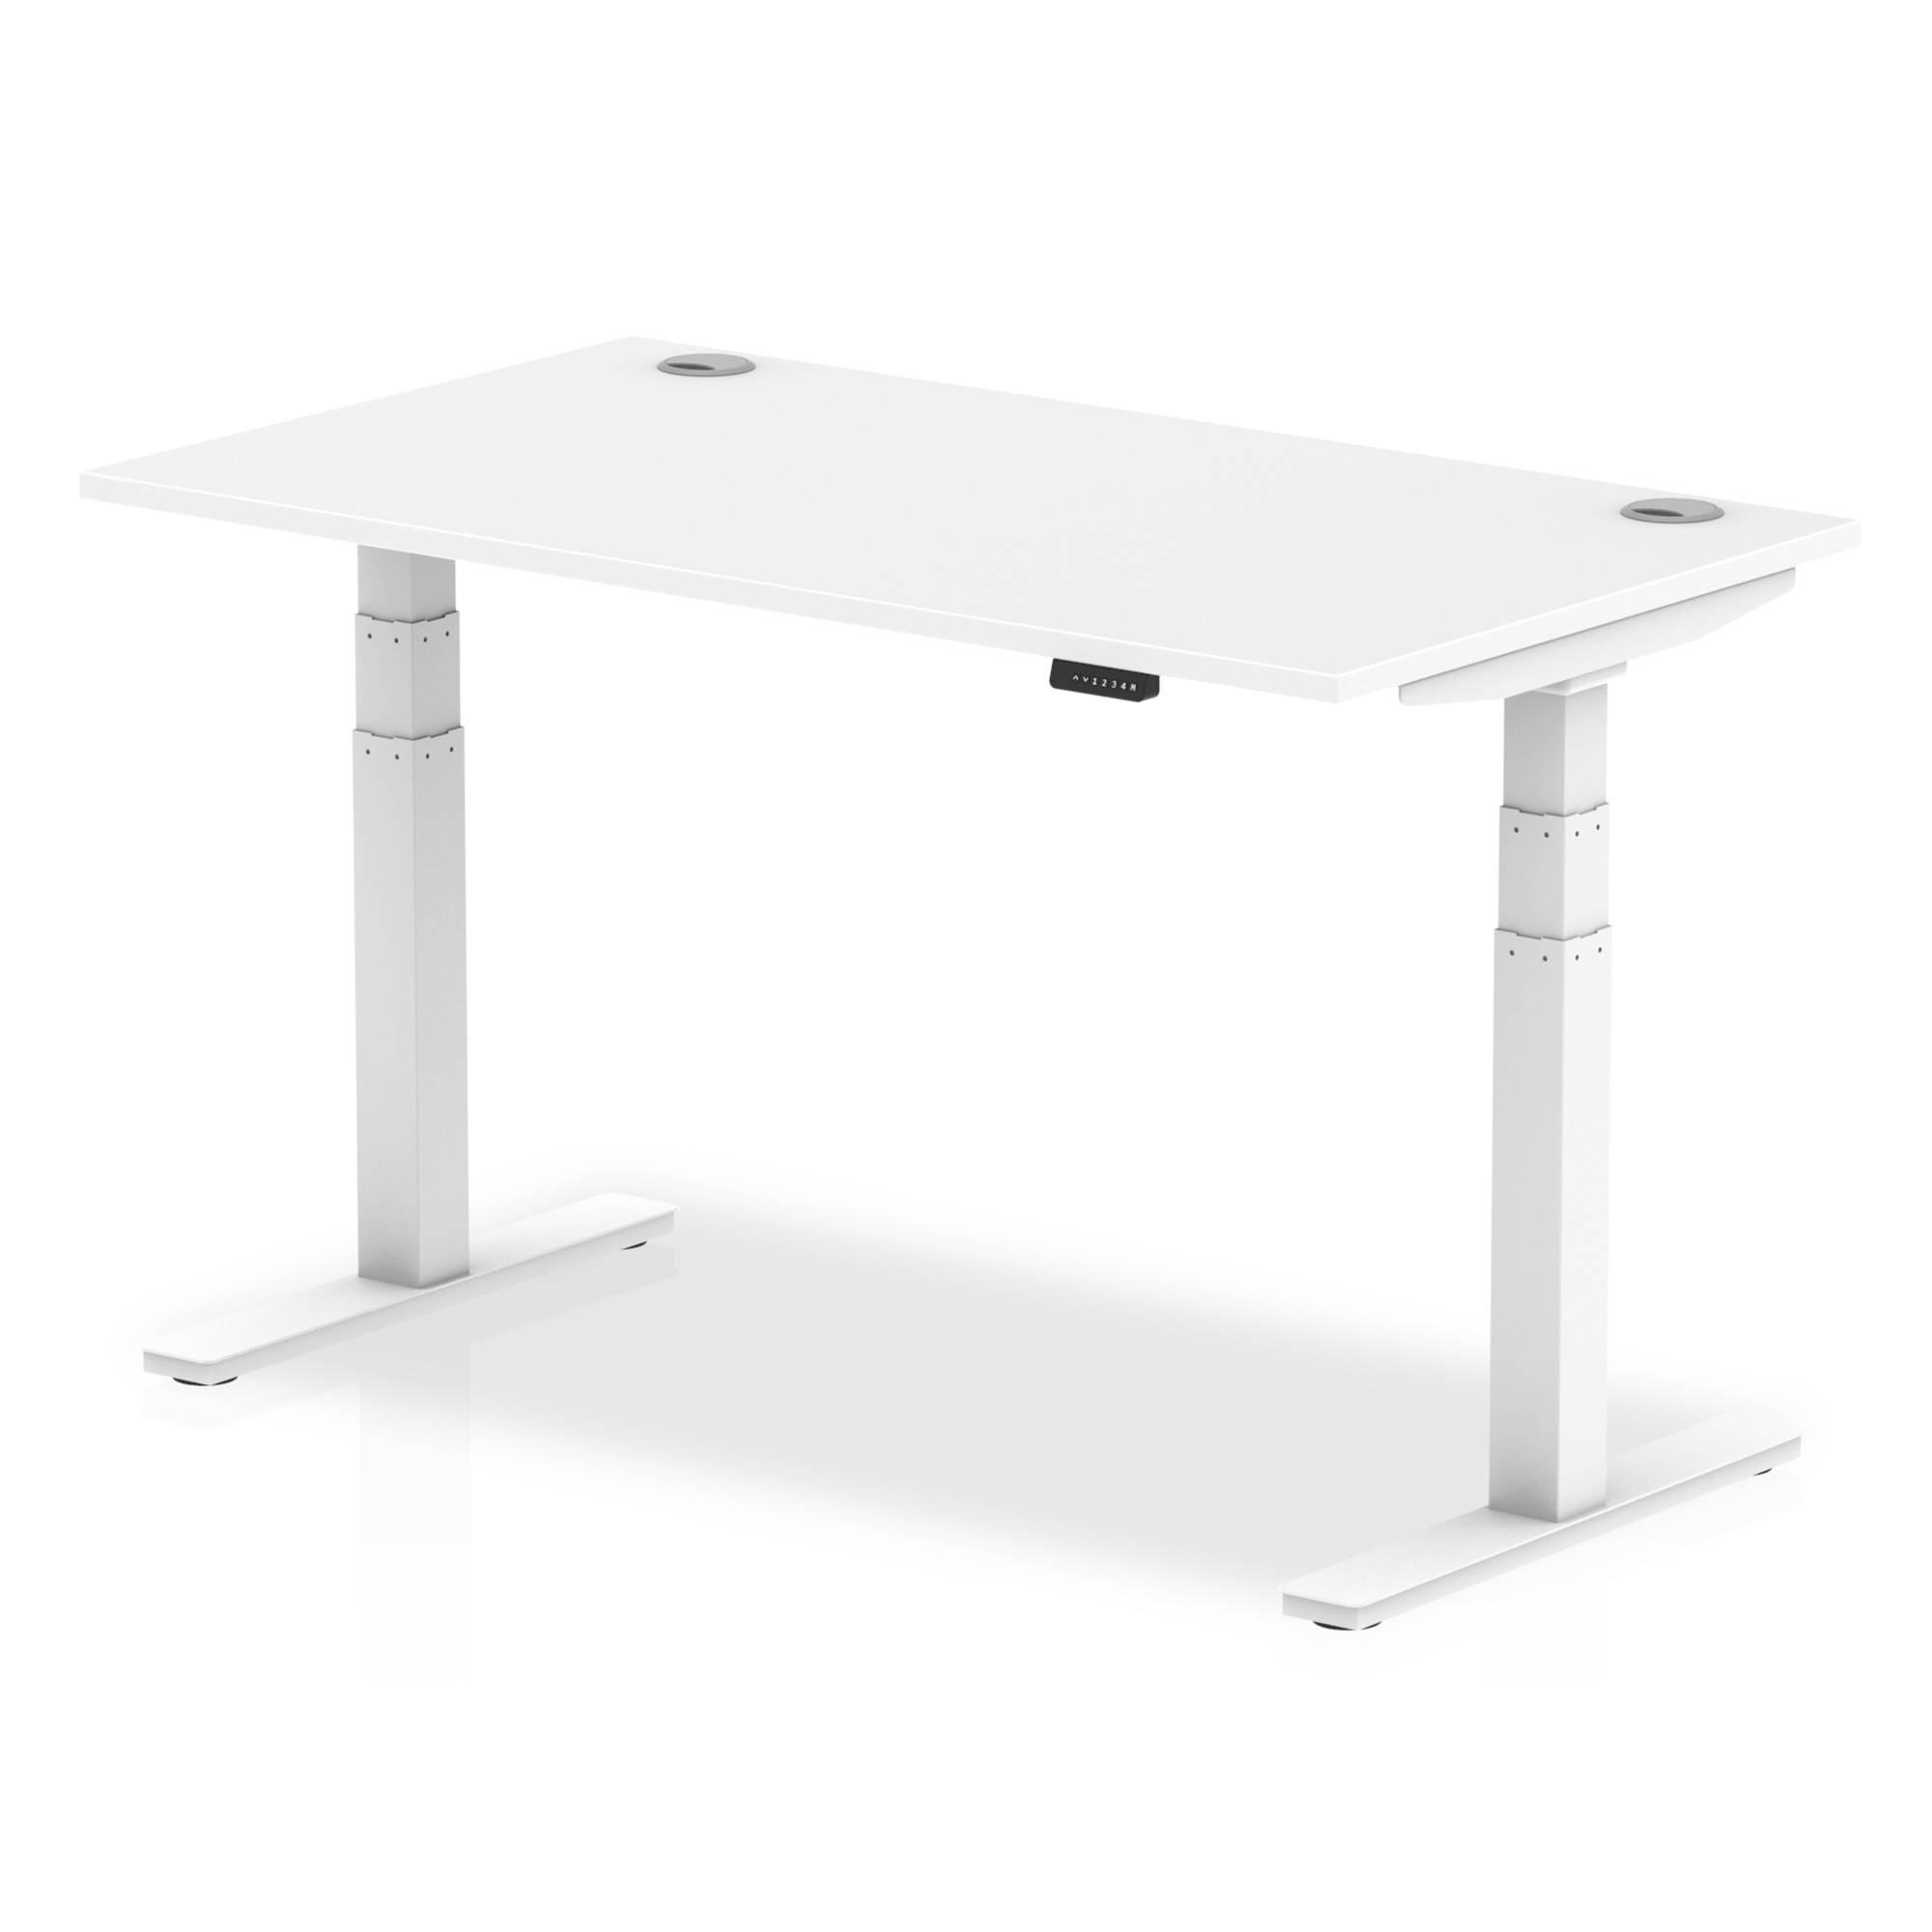 Trexus Sit Stand Desk With Cable Ports White Legs 1400x800mm White Ref HA01110